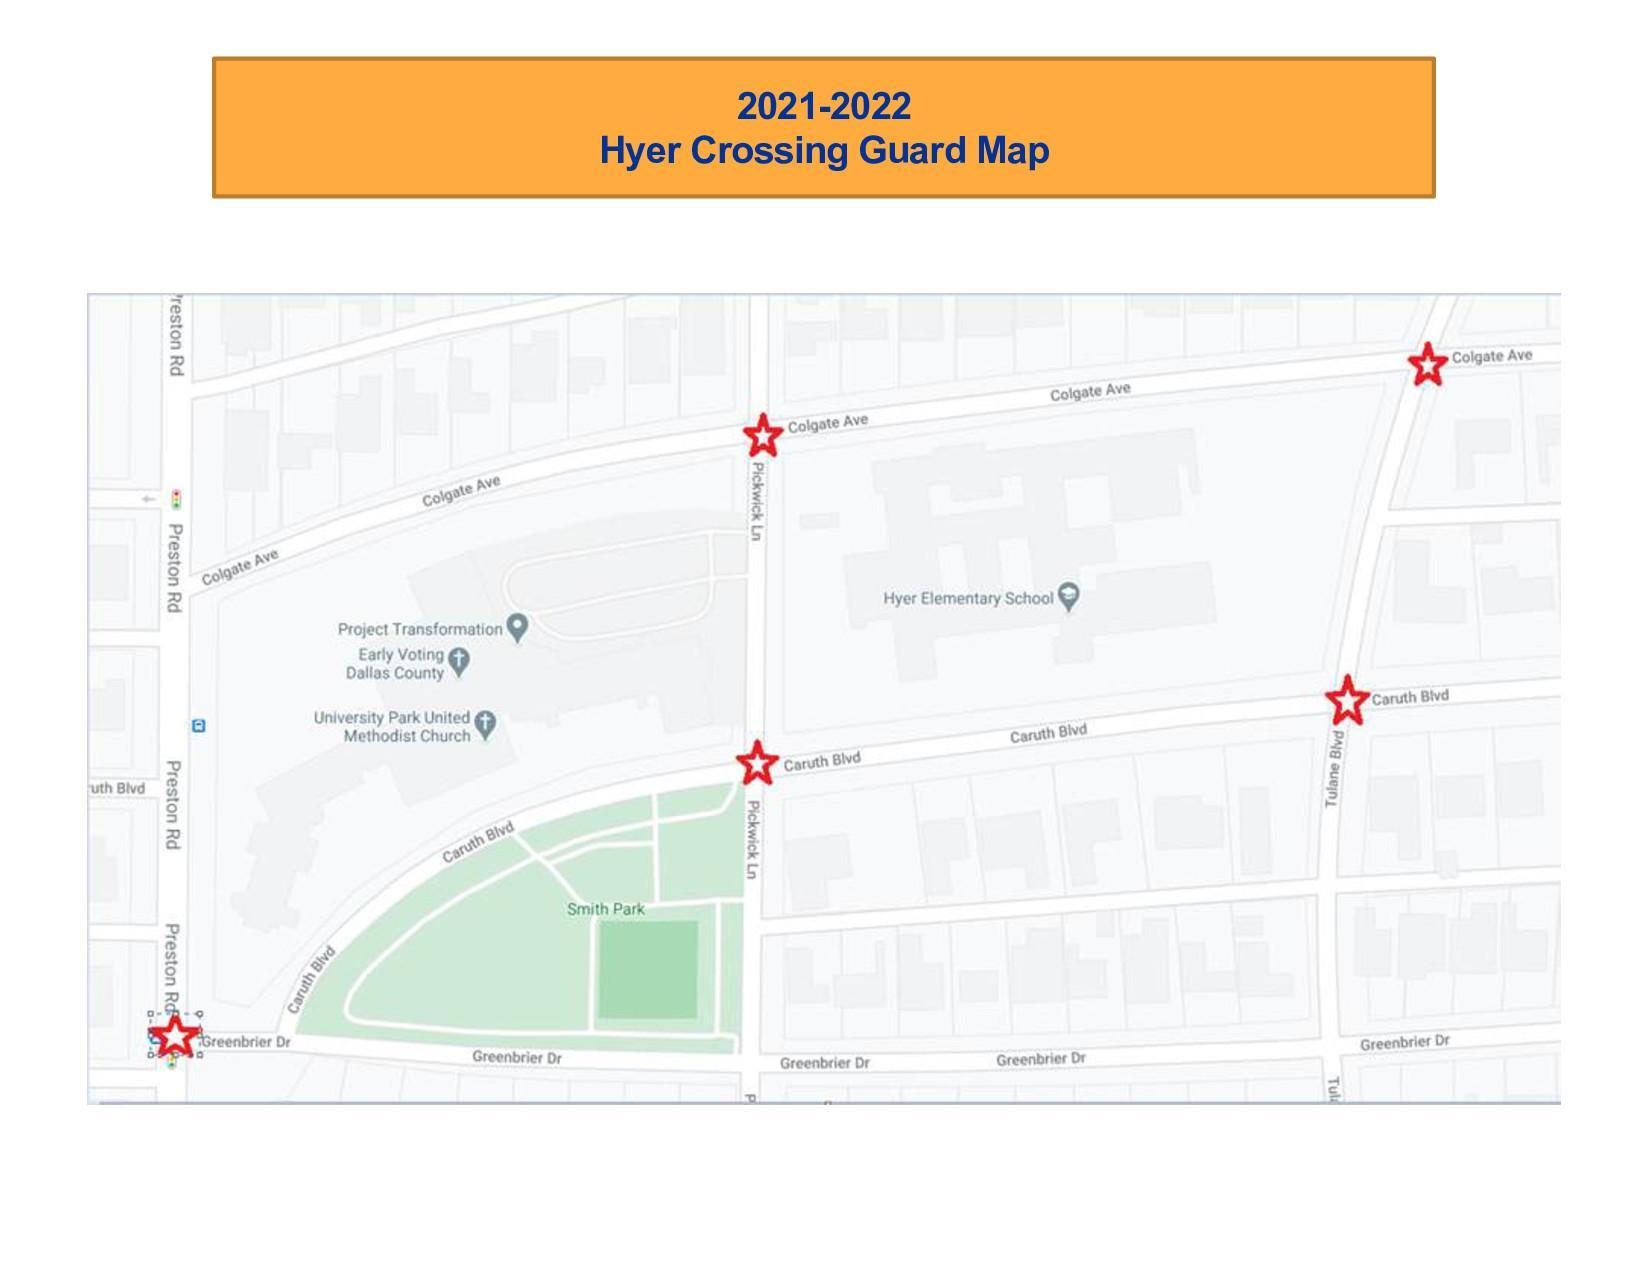 Hyer Crossing Guard Stations